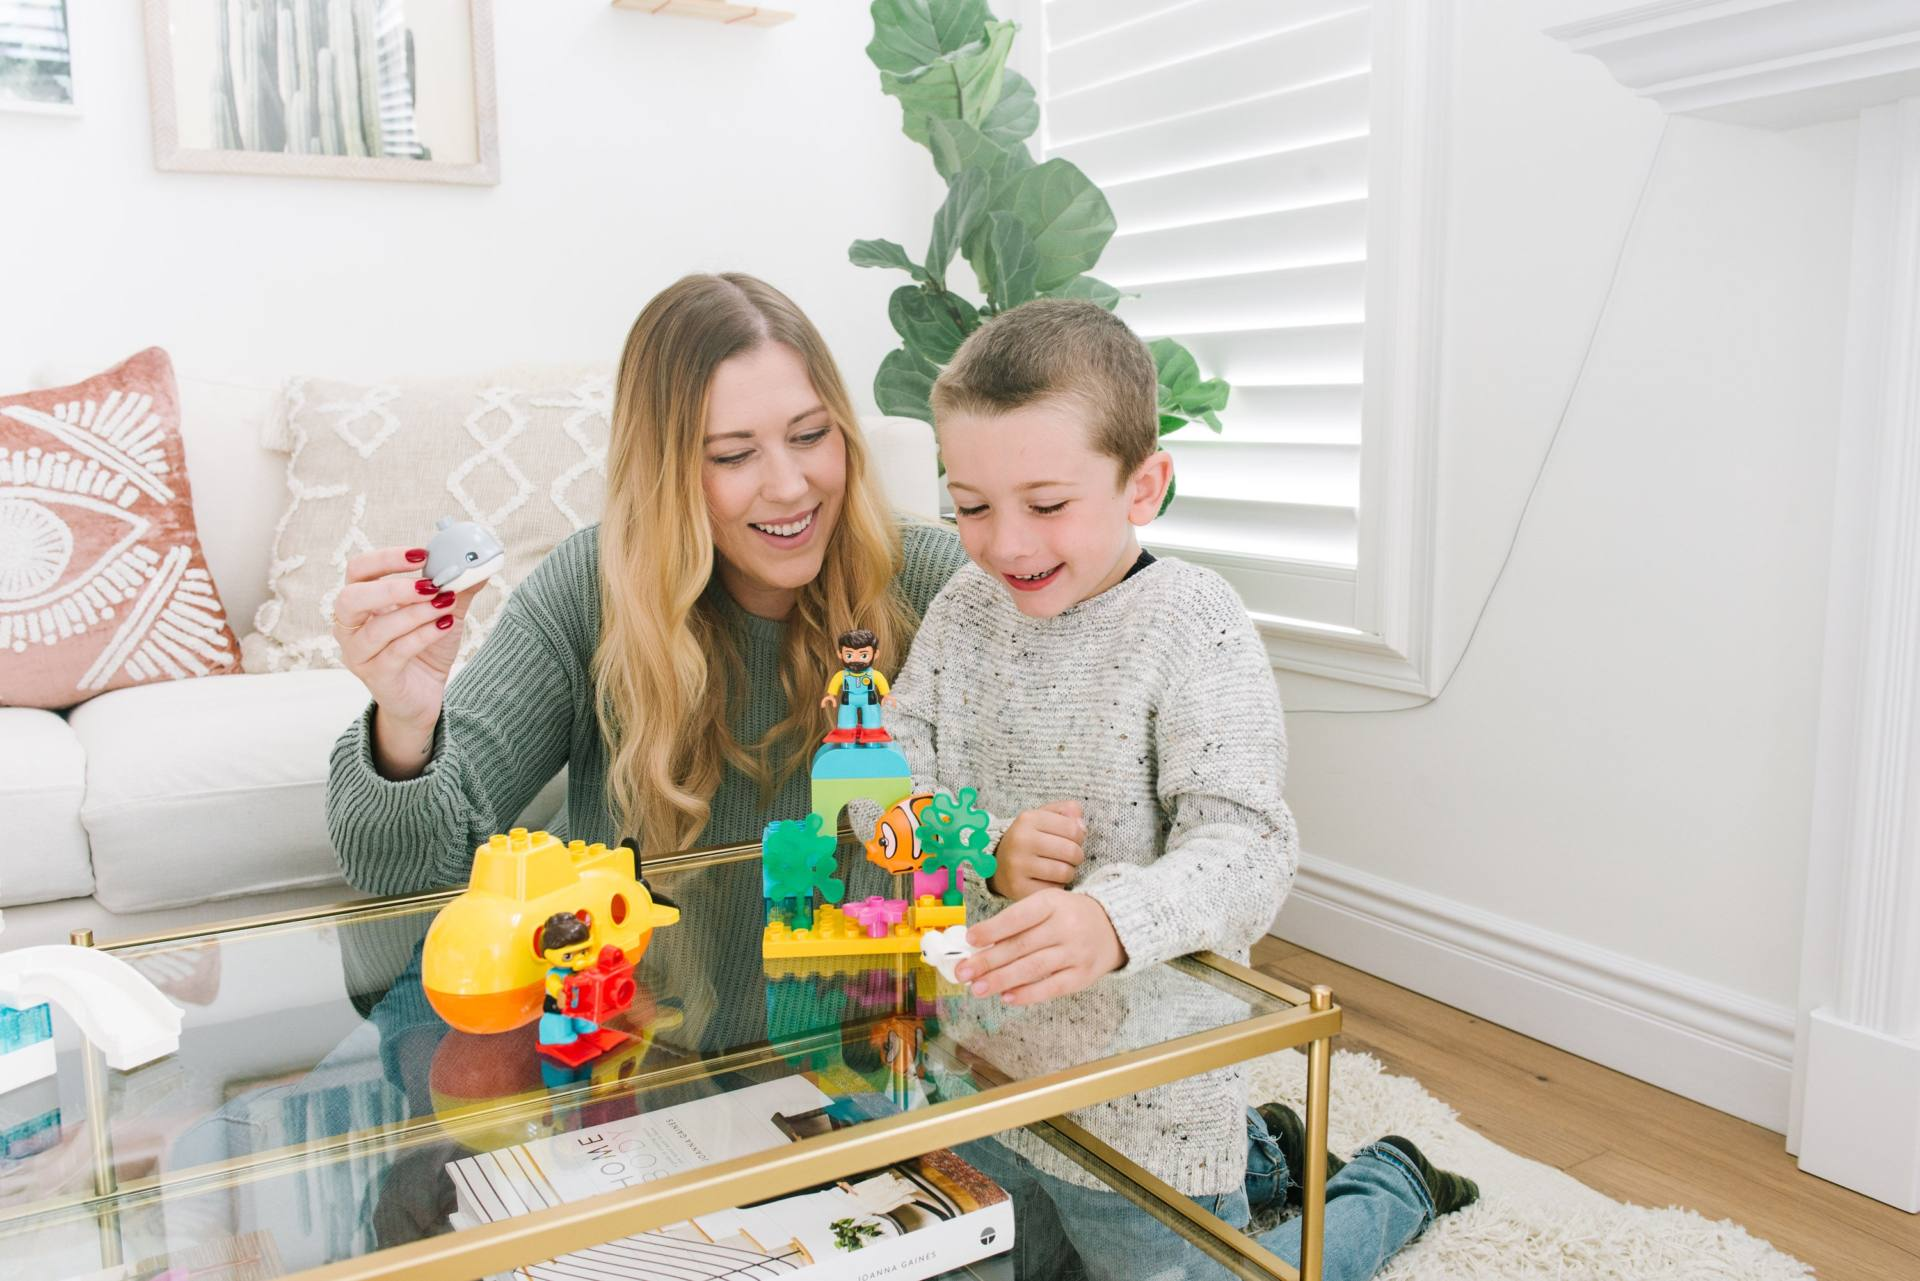 These toy sets are the answer to all of your holiday gift-giving worries